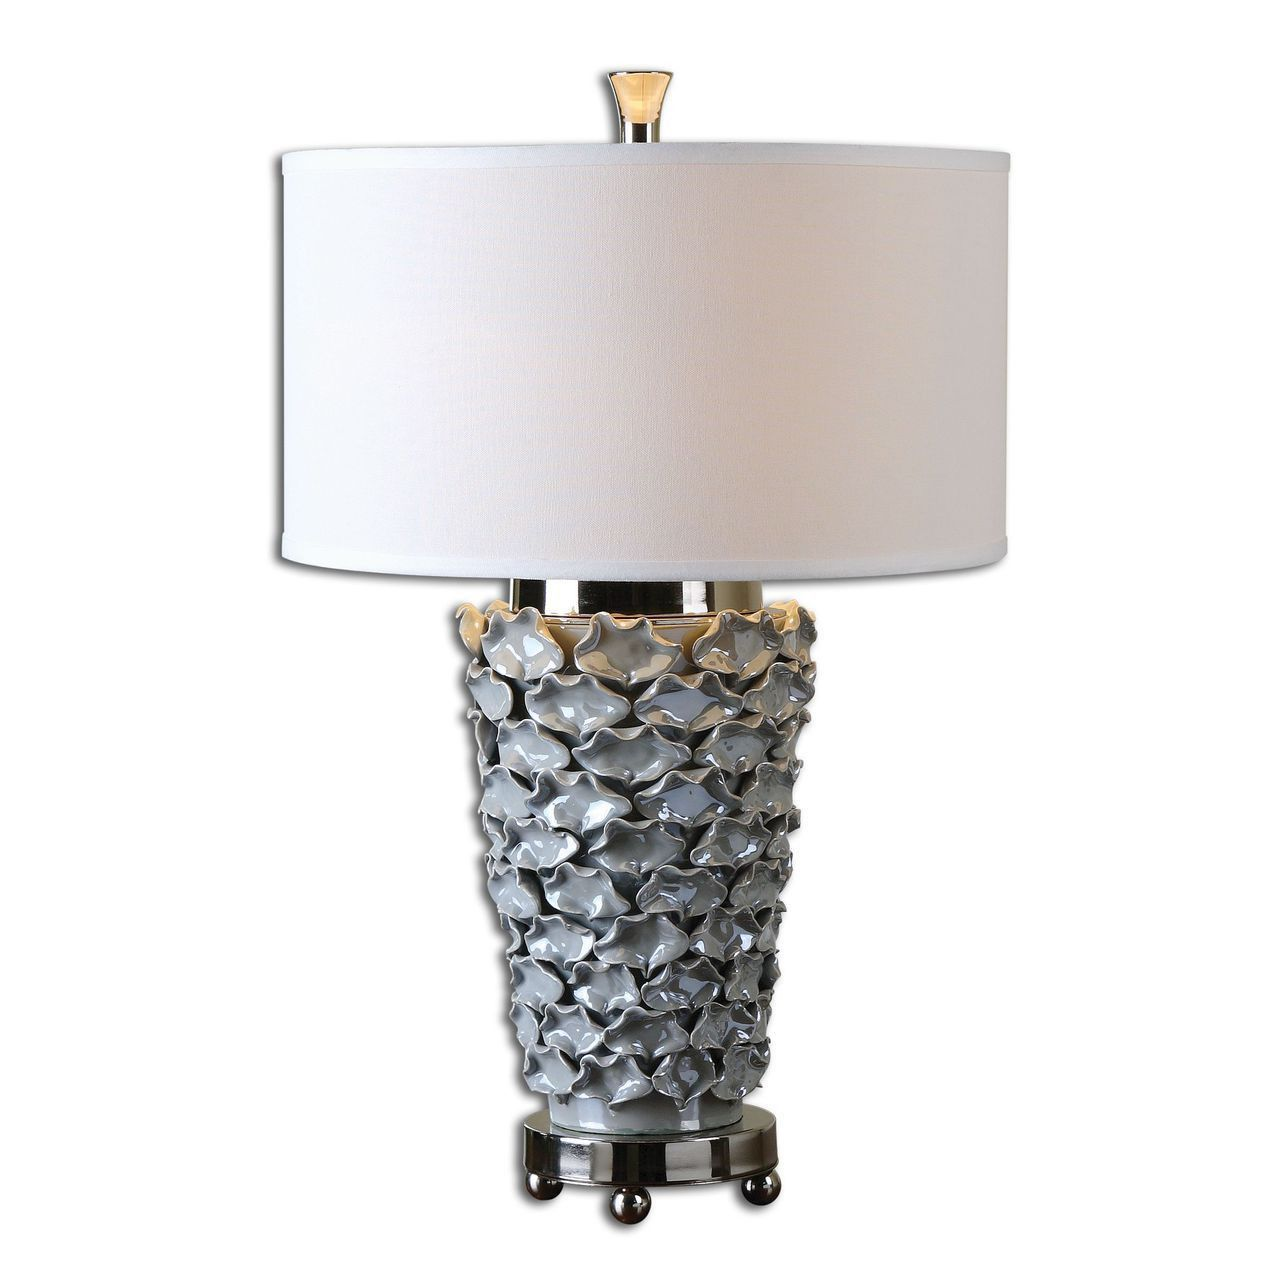 Gray Table Lamps Amusing Uttermost Petalo Pearl Gray Table Lamp  Products  Pinterest  Grey Design Inspiration